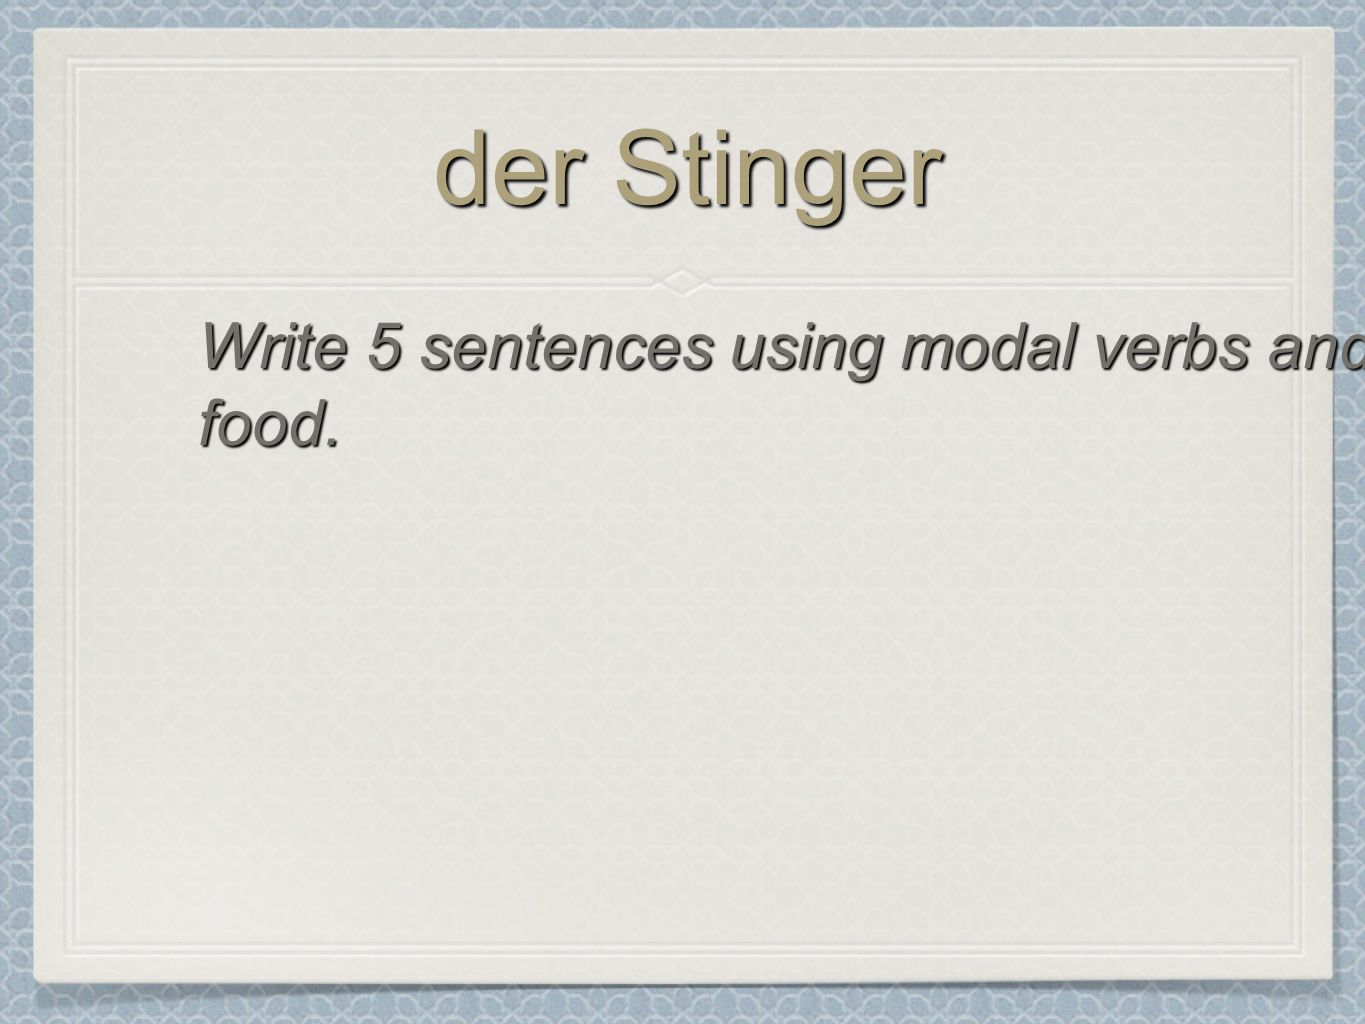 der Stinger Write 5 sentences using modal verbs and food.